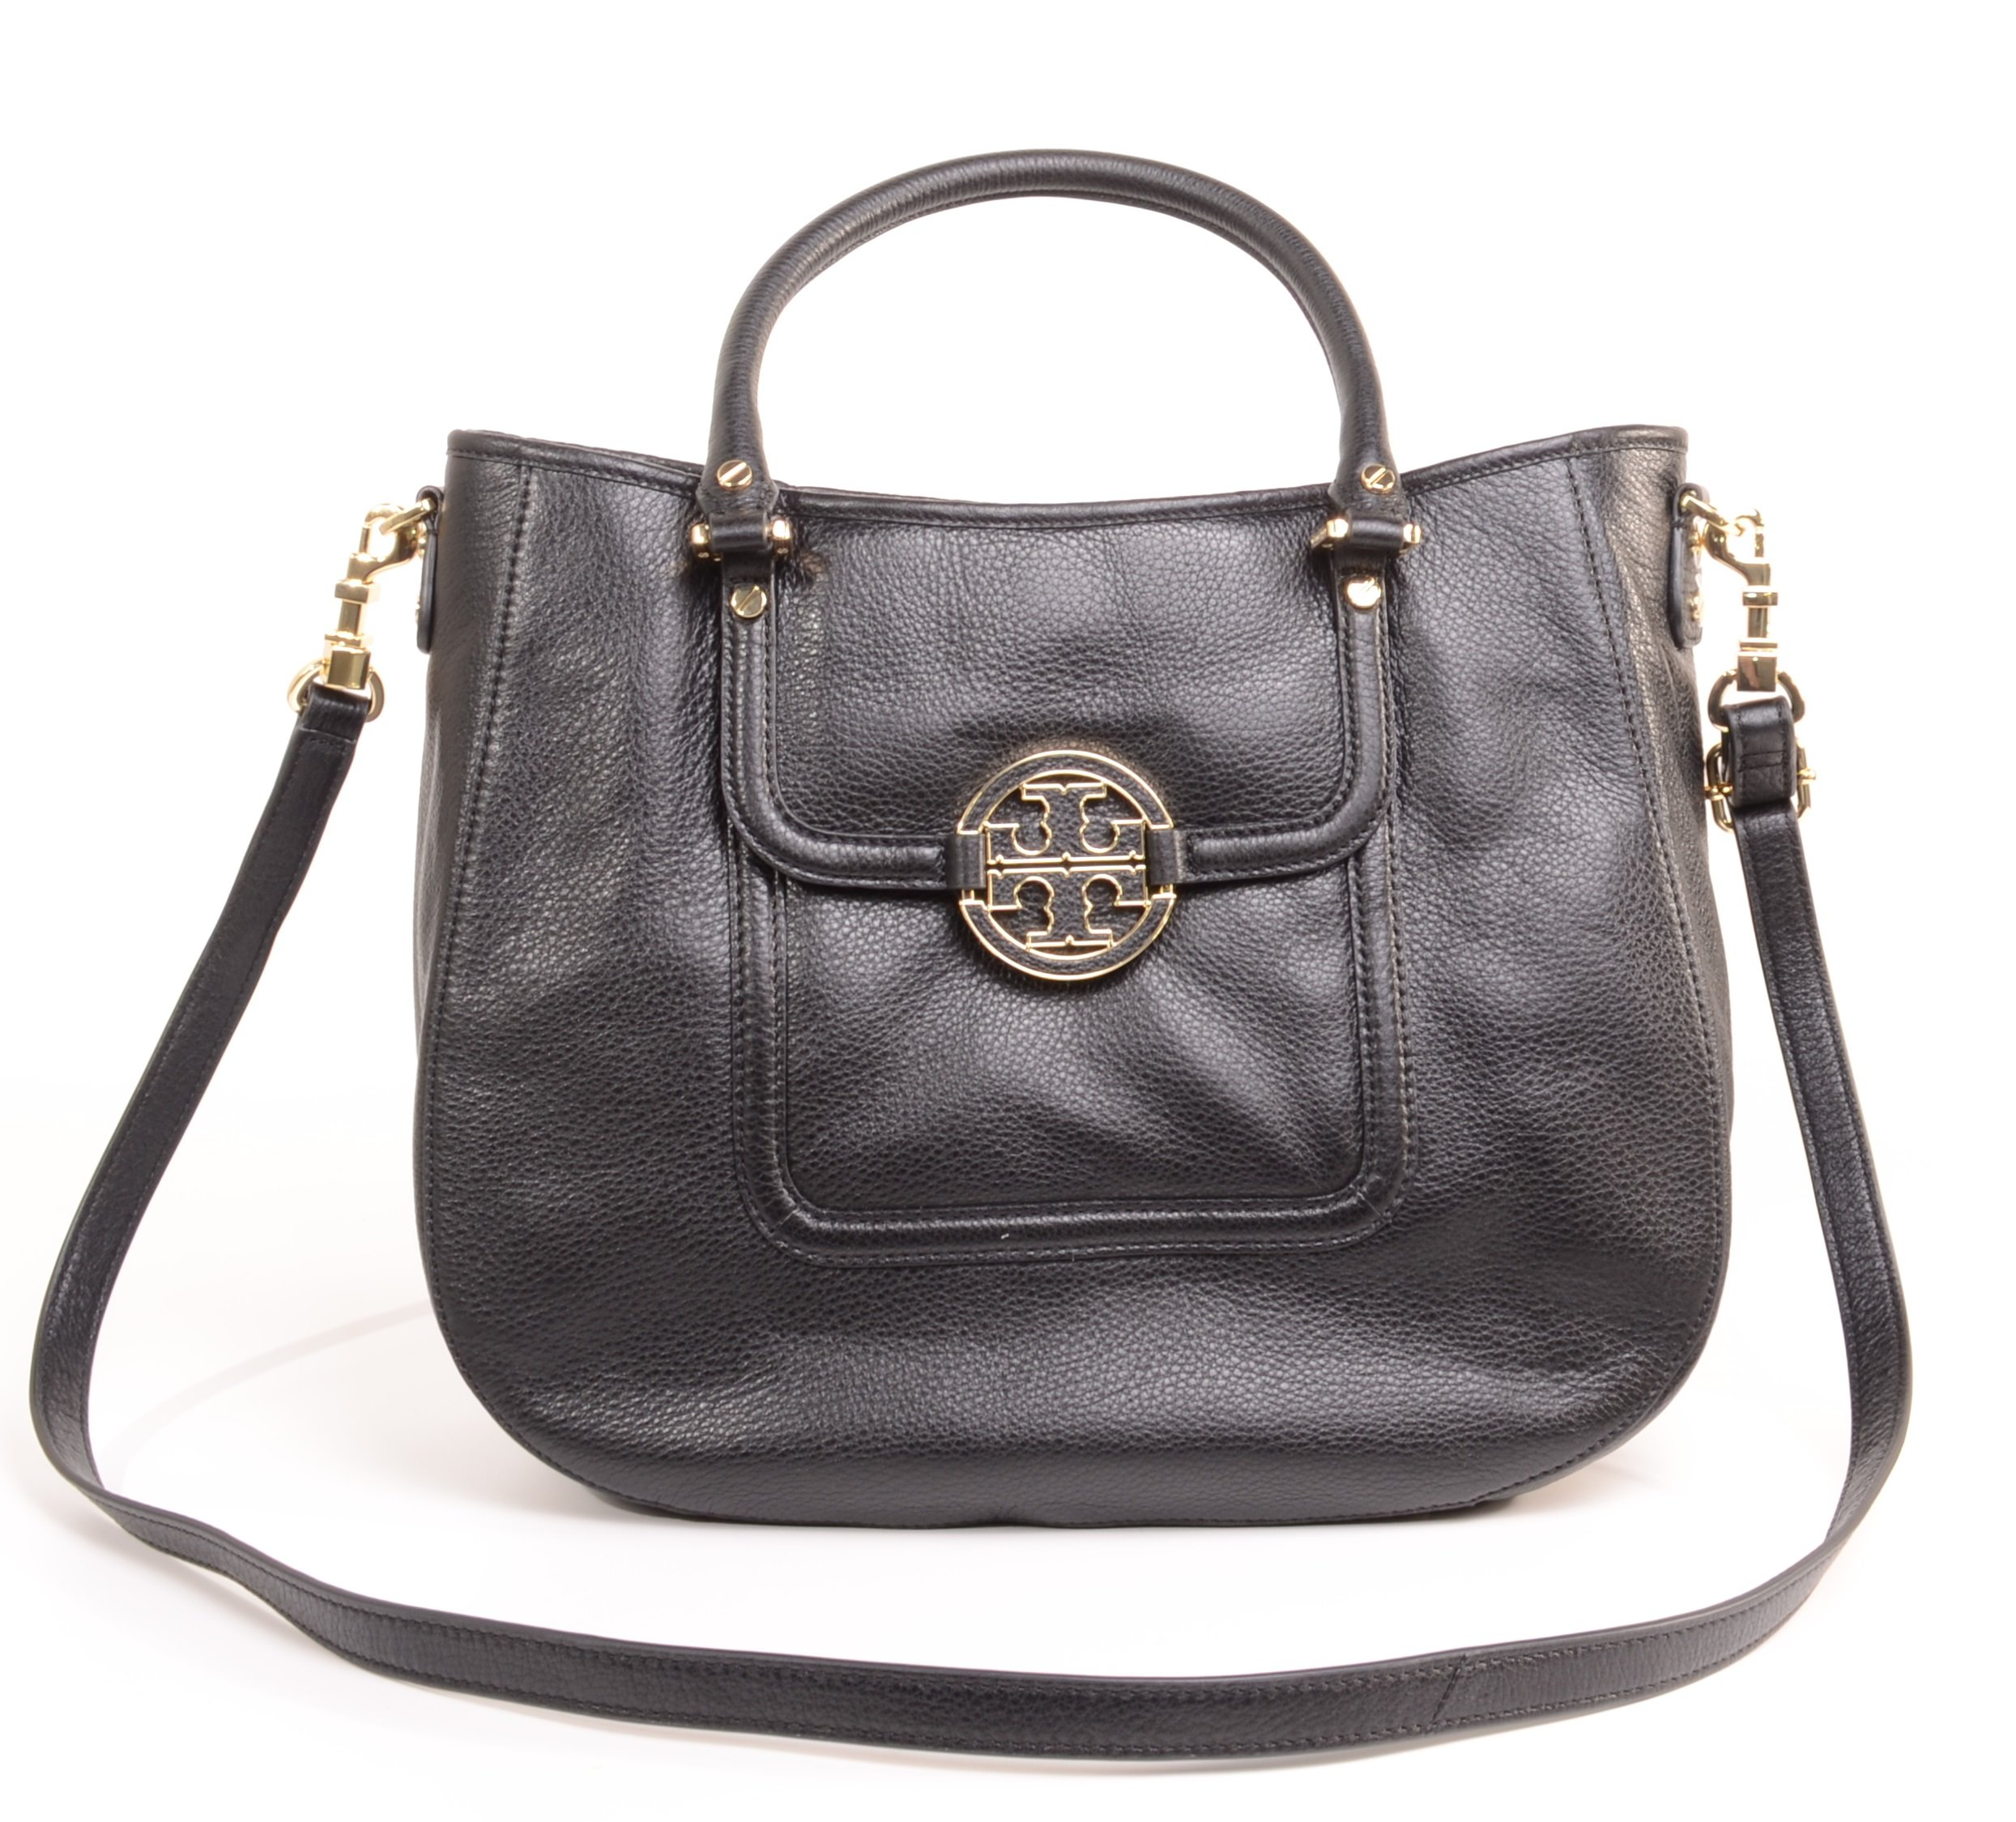 Tory Burch Pebbled Leather Crossbody Shoulder Bag Handbag Style No. 50009500 (Black) by Tory Burch